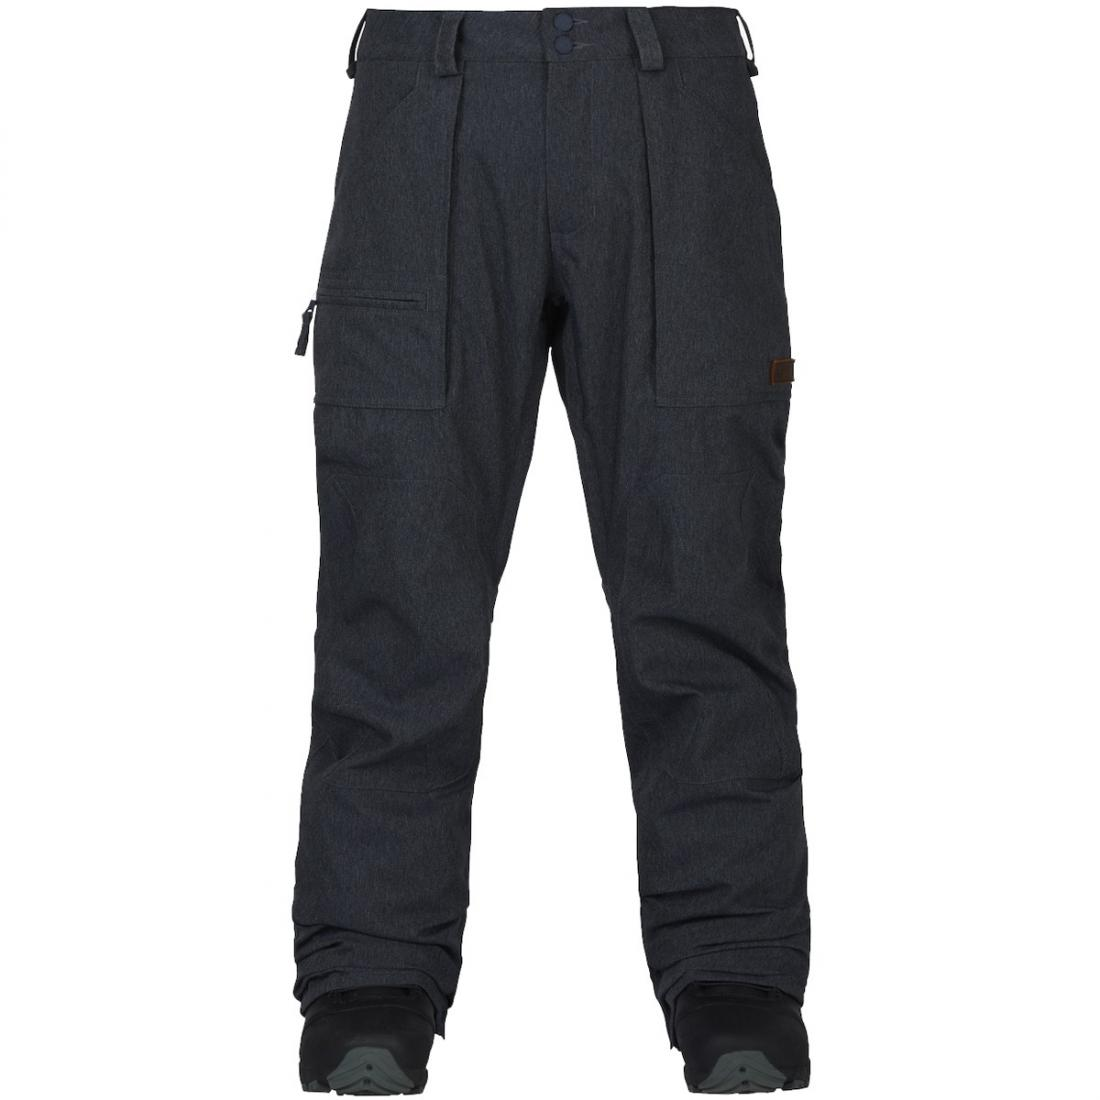 Штаны для сноуборда Burton Southside Pant - Slim Fit купить в Boardshop №1